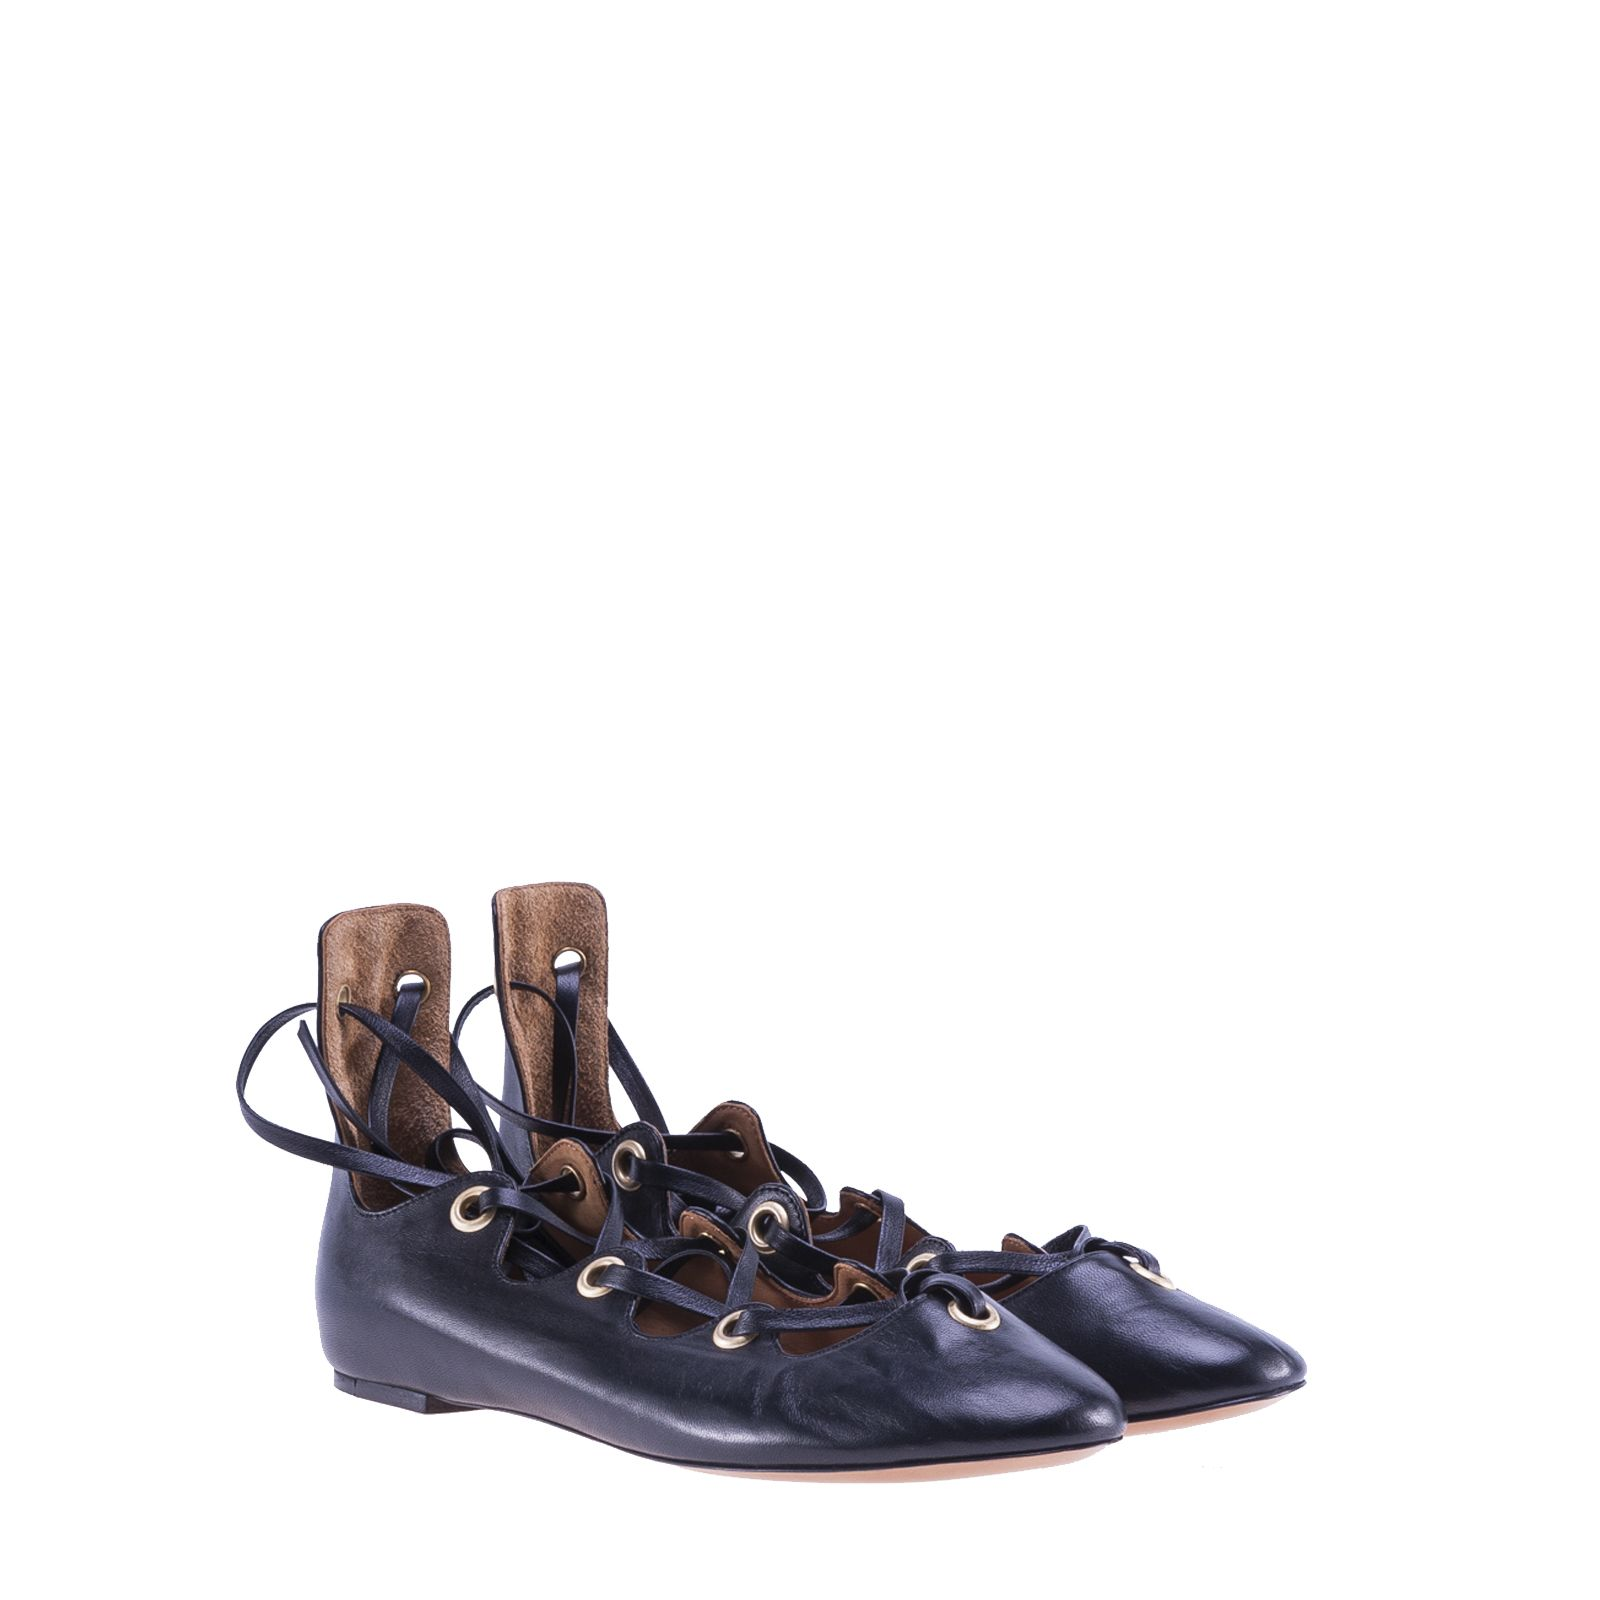 Isabel Marant Lace-up Ballerina Shoes